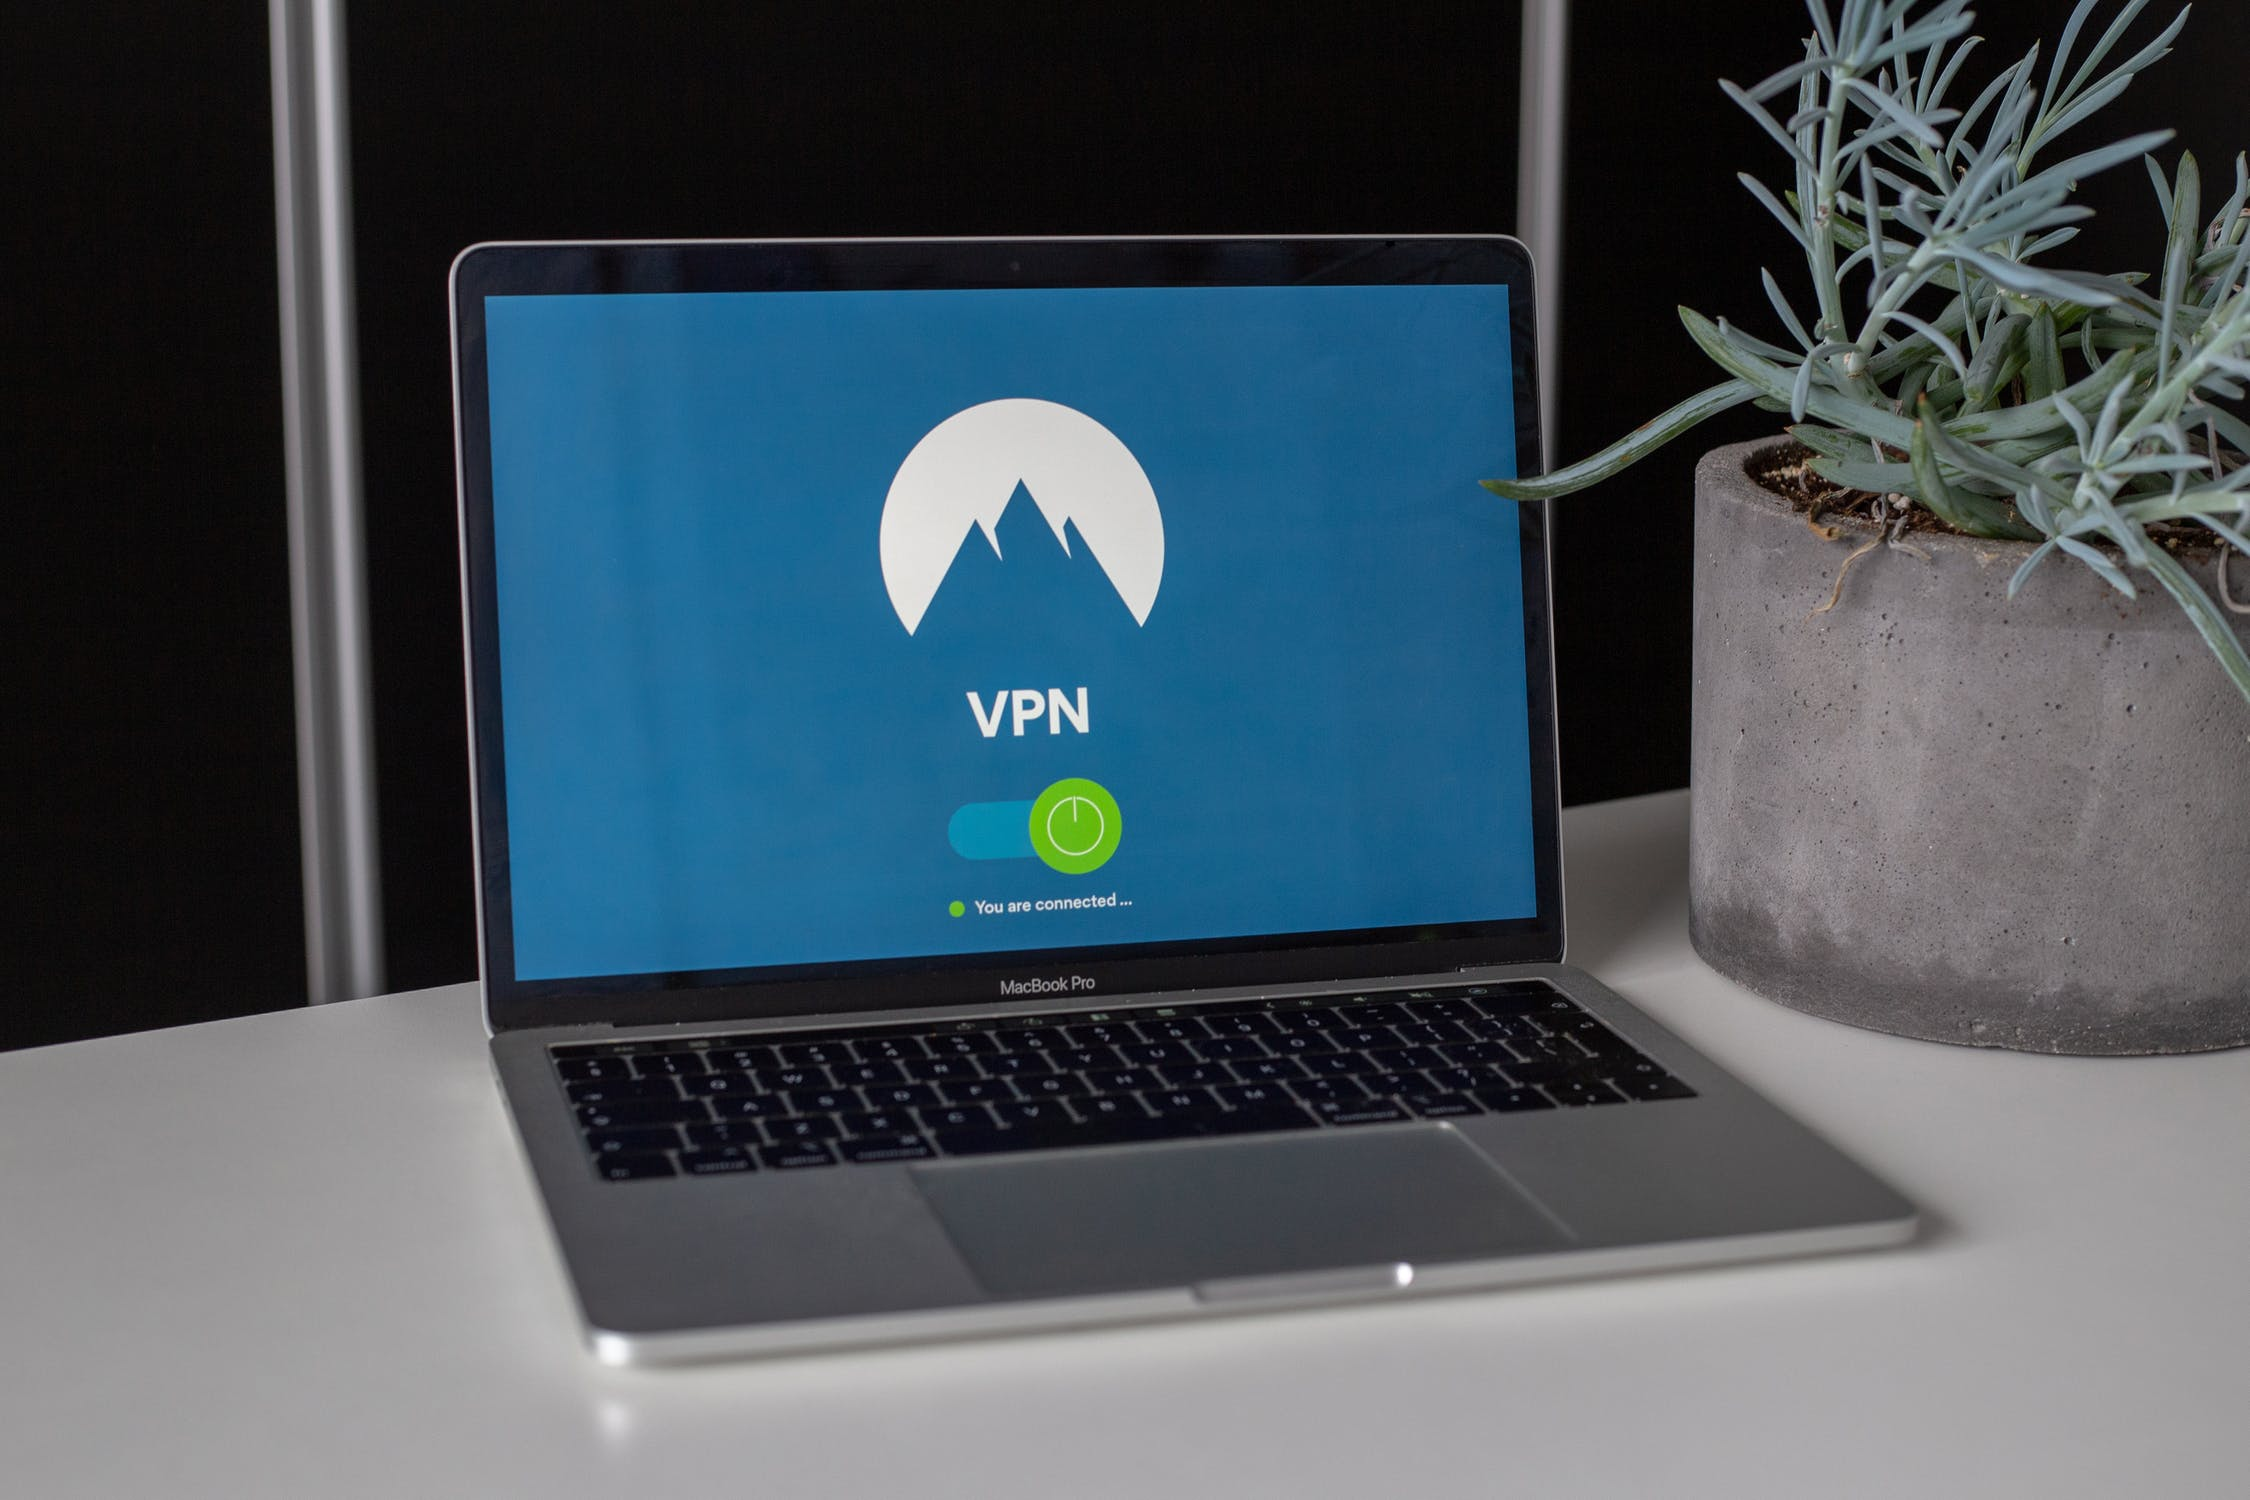 An image of a laptop using VPN.